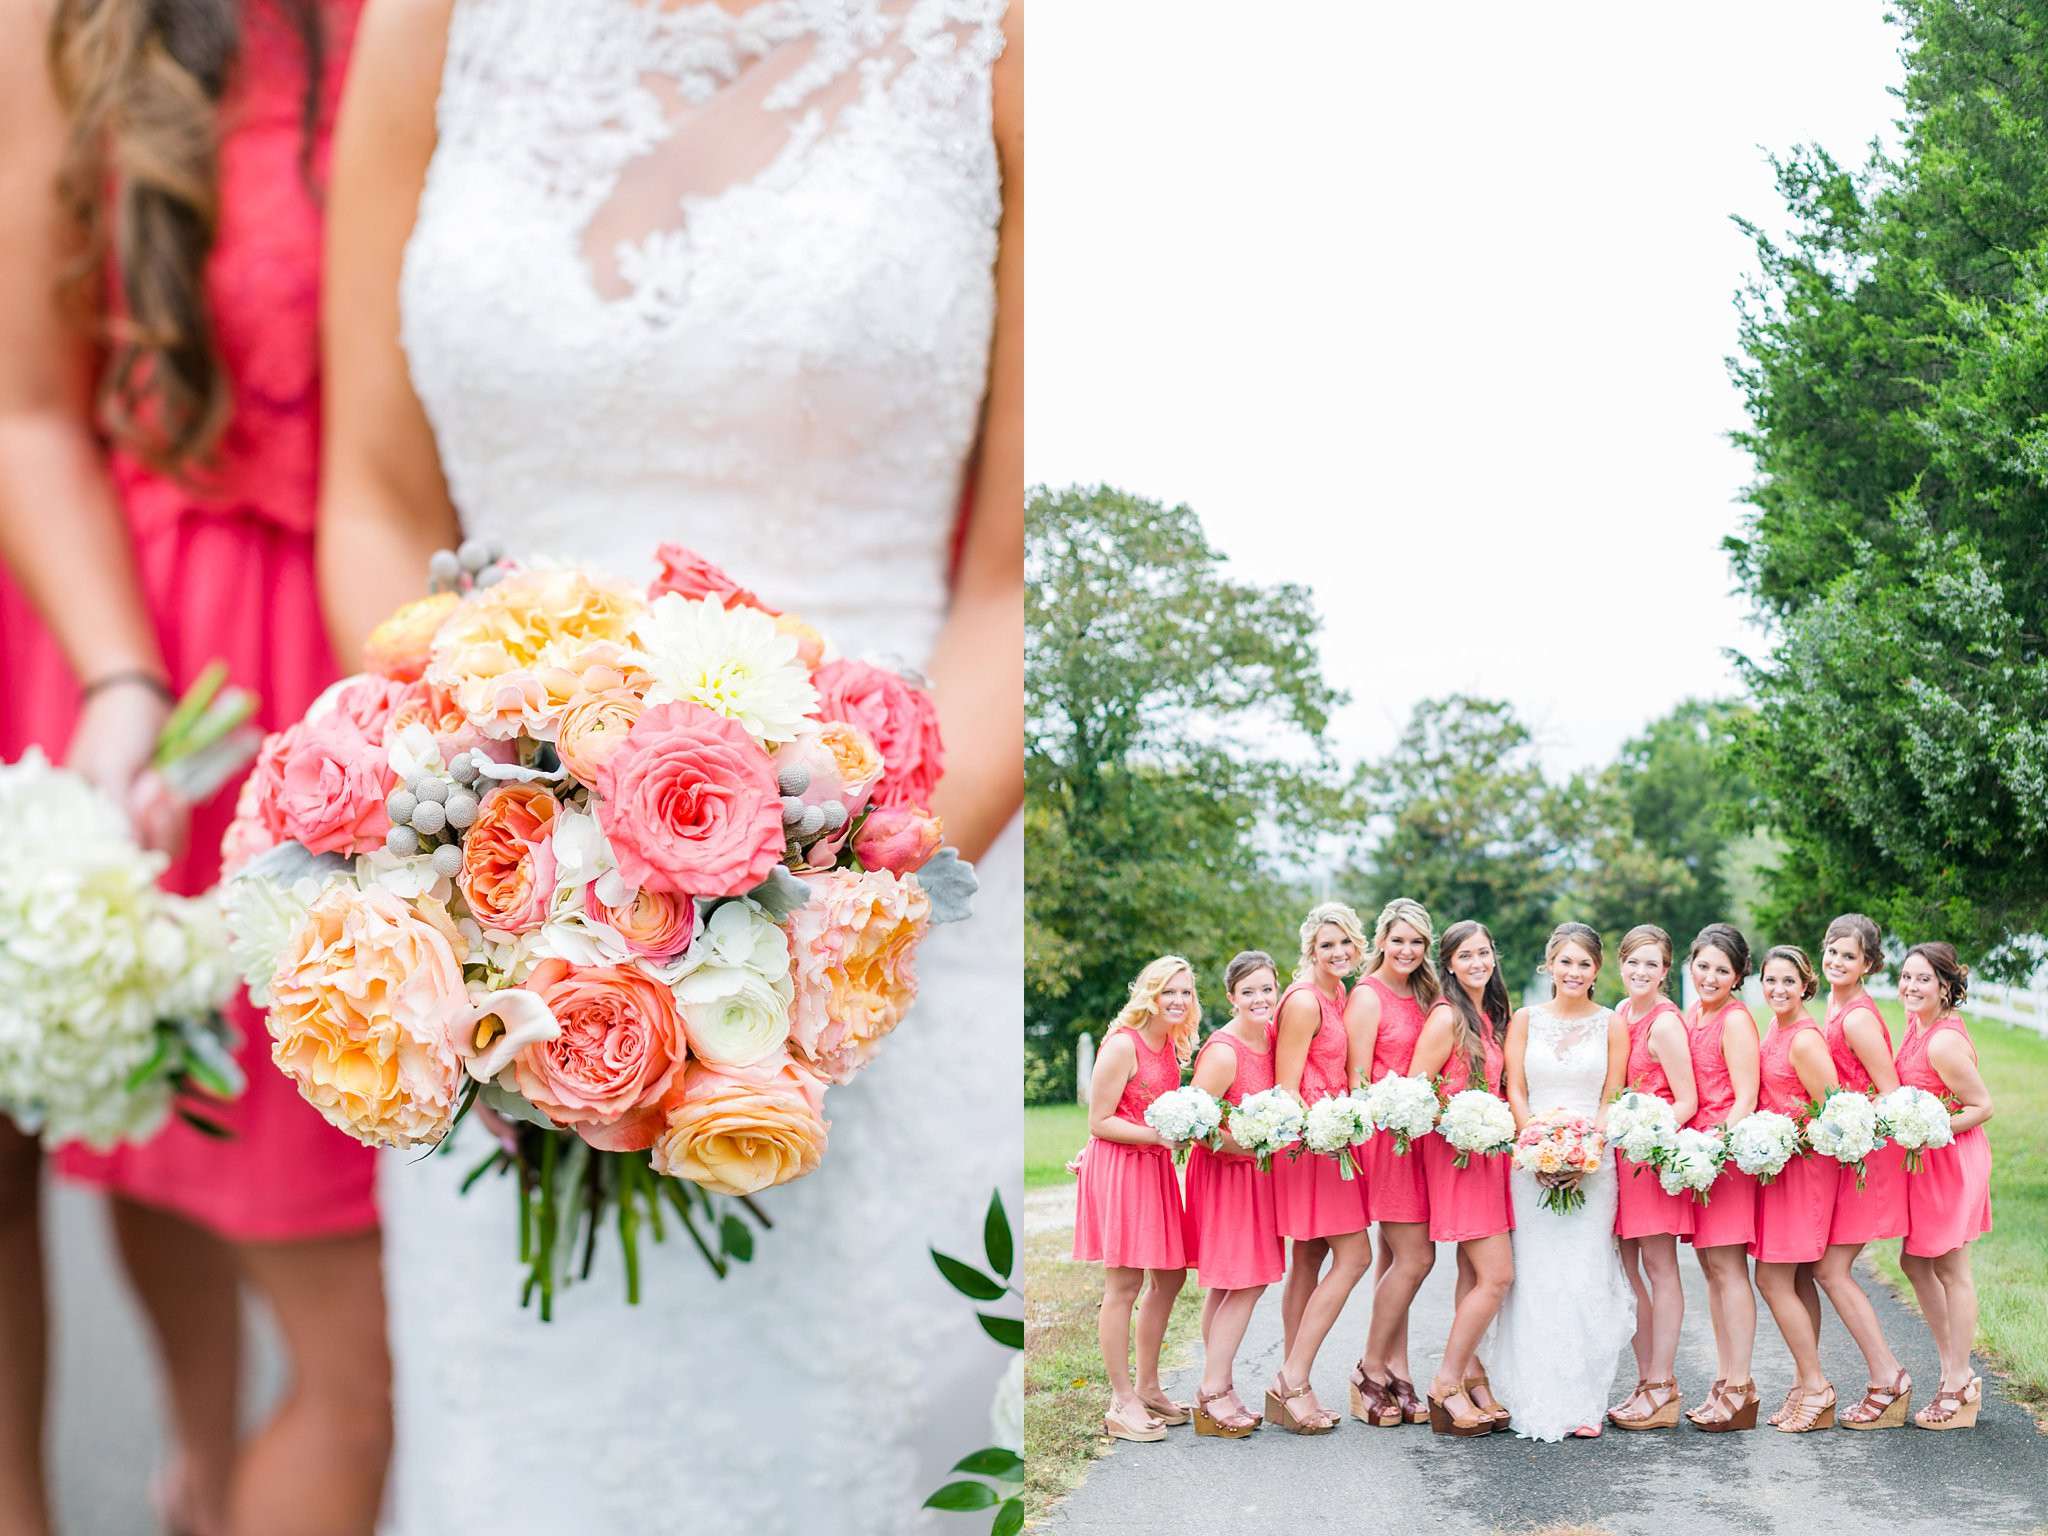 Stone Tower Winery Wedding Photos Virginia Wedding Photographer Megan Kelsey Photography Sam & Angela-68.jpg